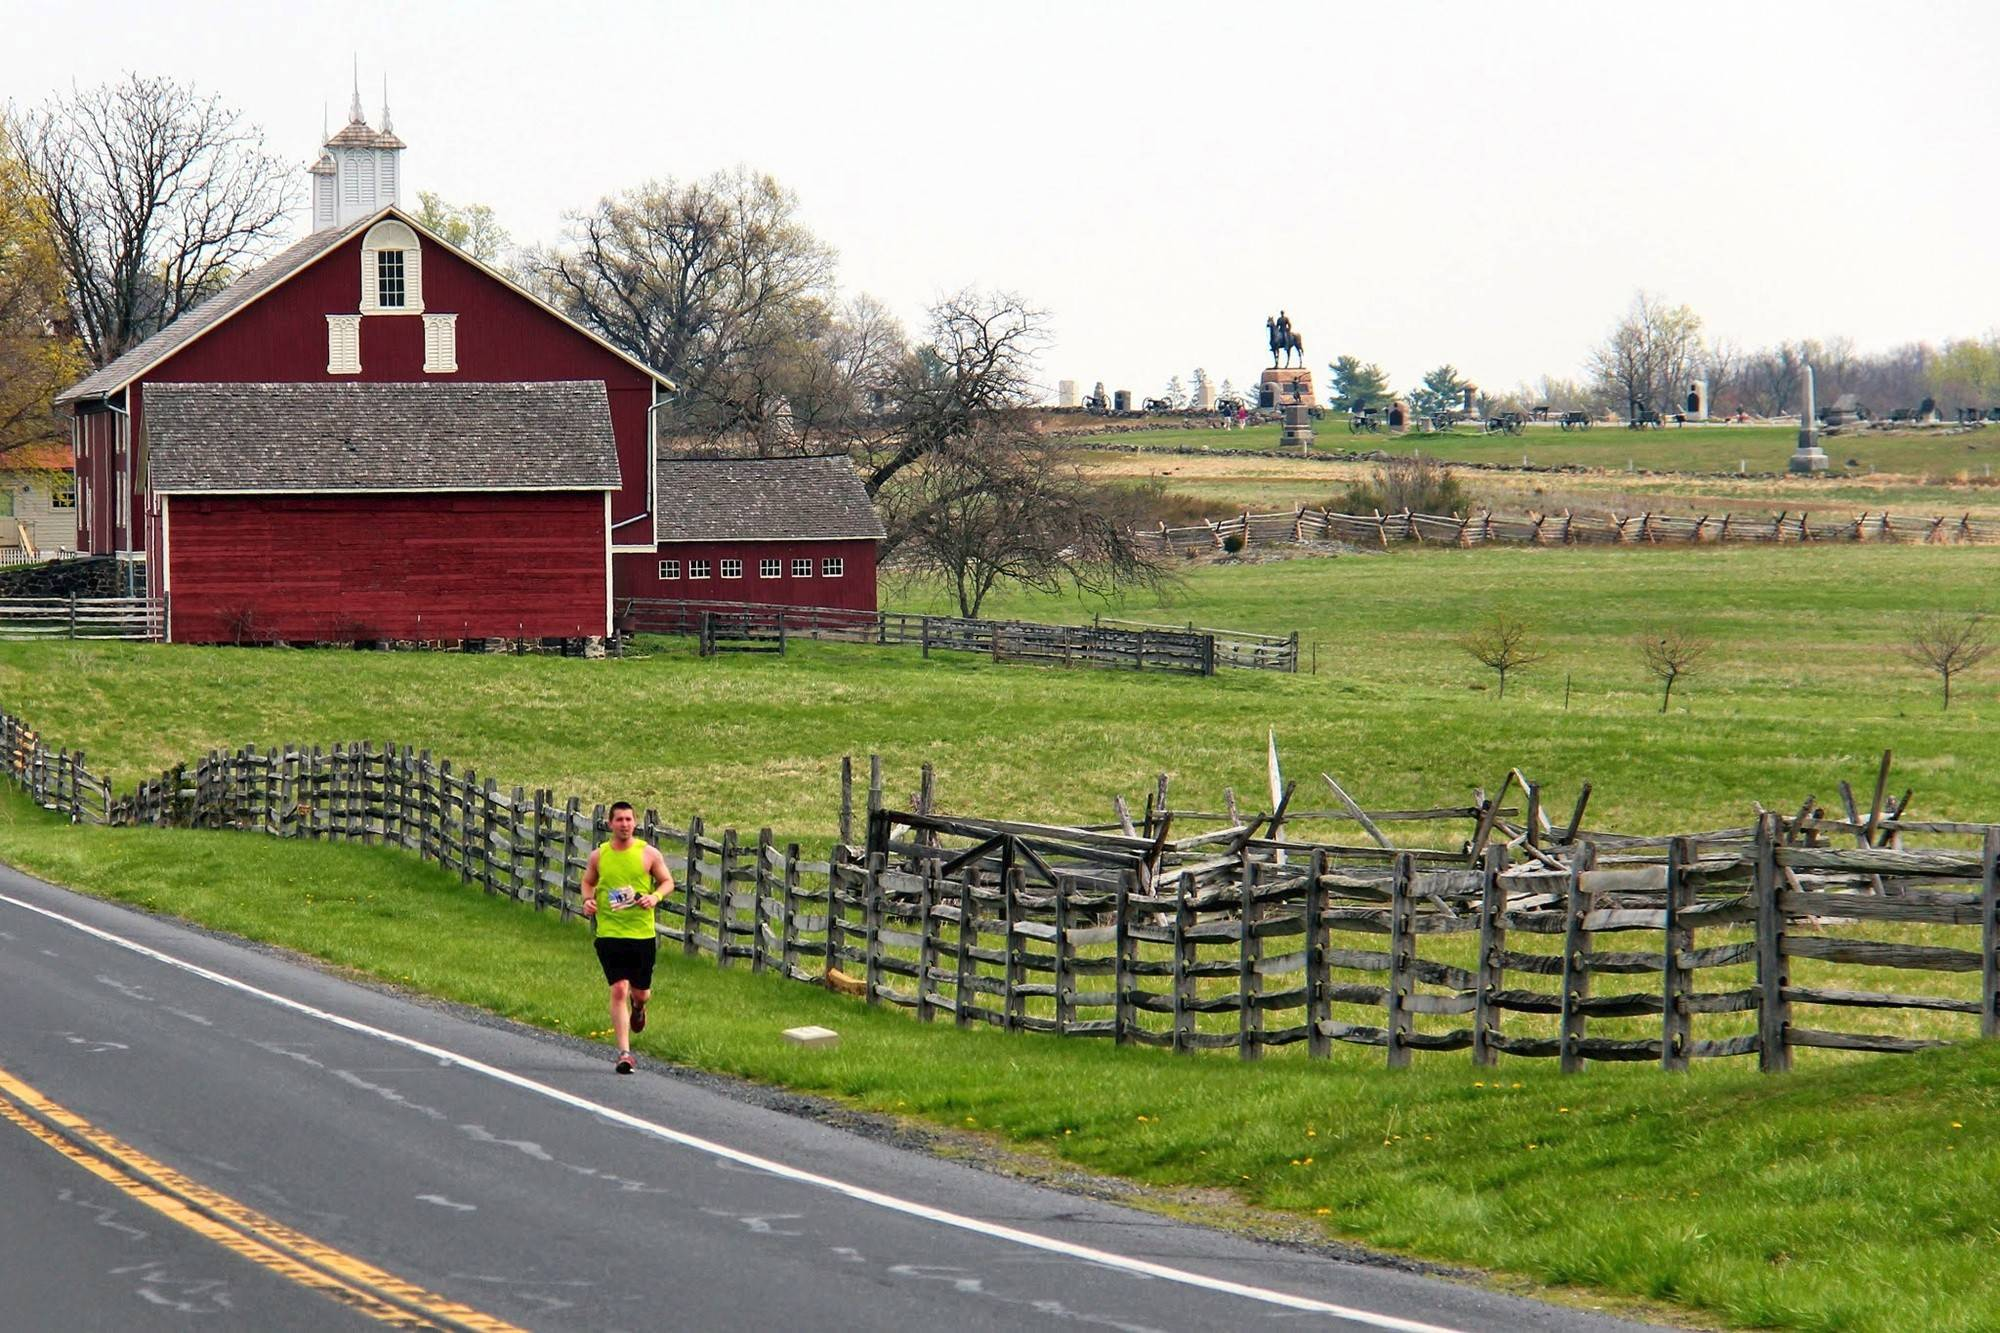 A runner traverses Gettysburg Military Park on the second leg of the 200-mile 2014 American Odyssey Relay. Running is usually seen as a solitary pursuit, but relay races are helping to change that perspective.